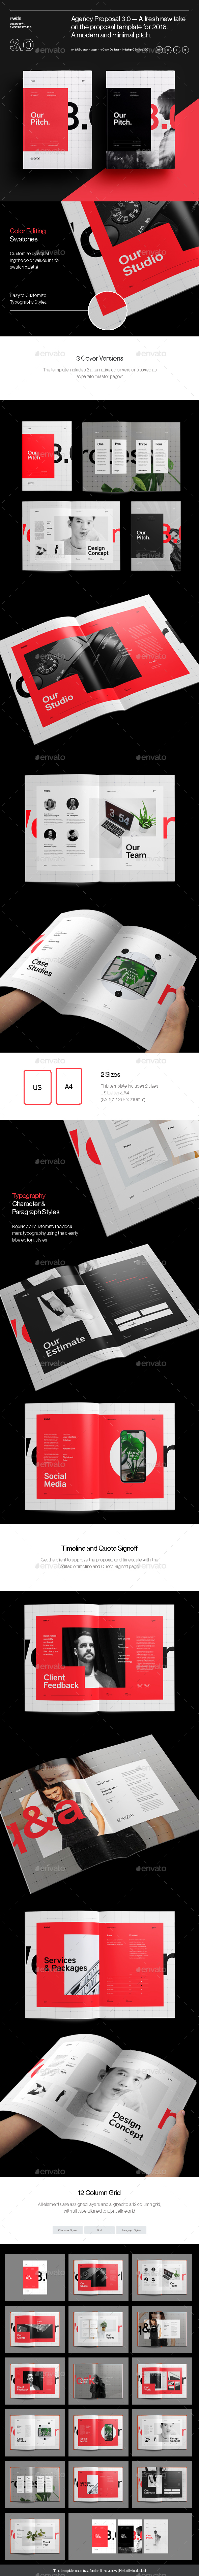 Agency Proposal 3.0 - Corporate Brochures